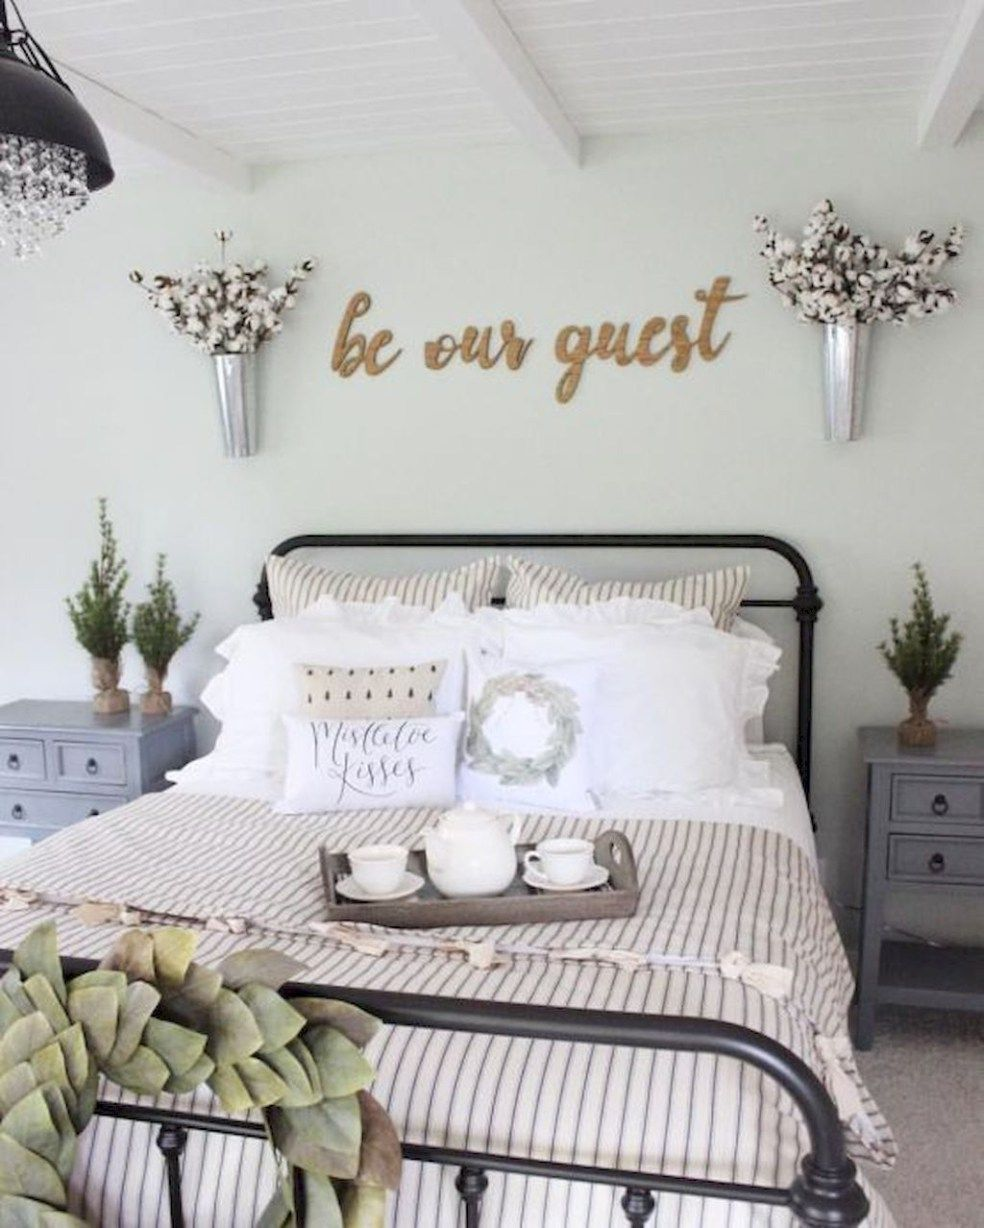 38 The Best Modern Farmhouse Style Ideas For Your Bedroom Design   Popy Home